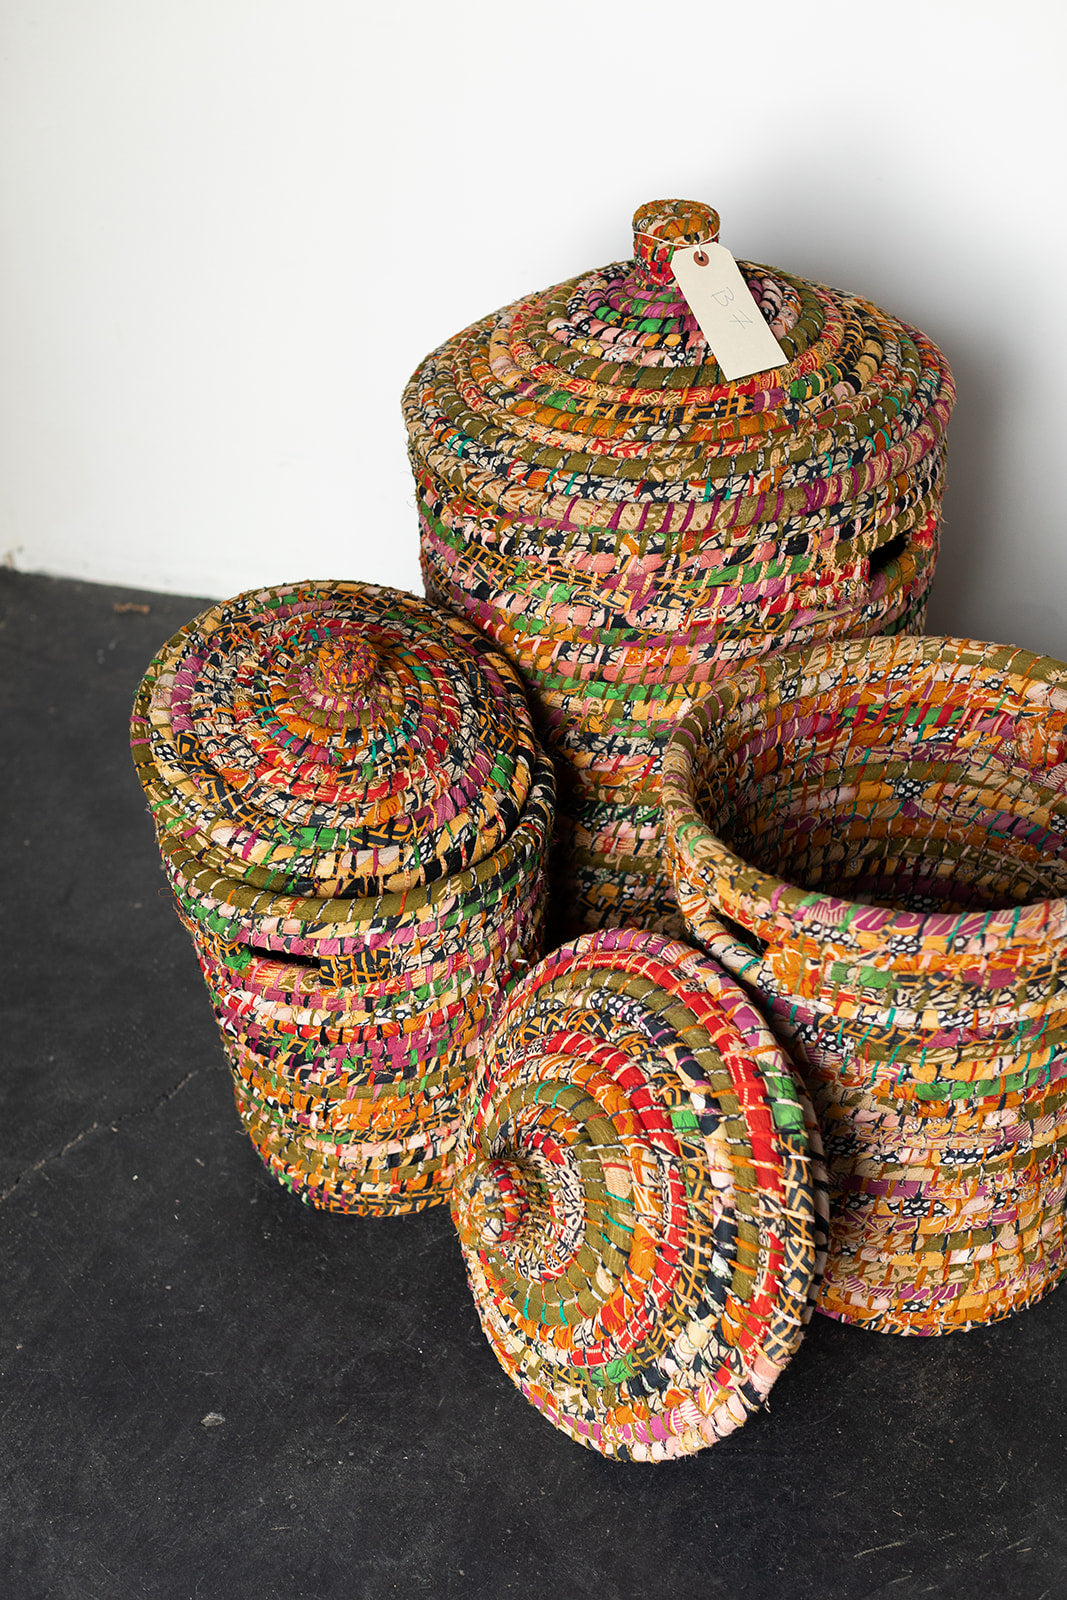 Recycled Sari Nesting Baskets - B7